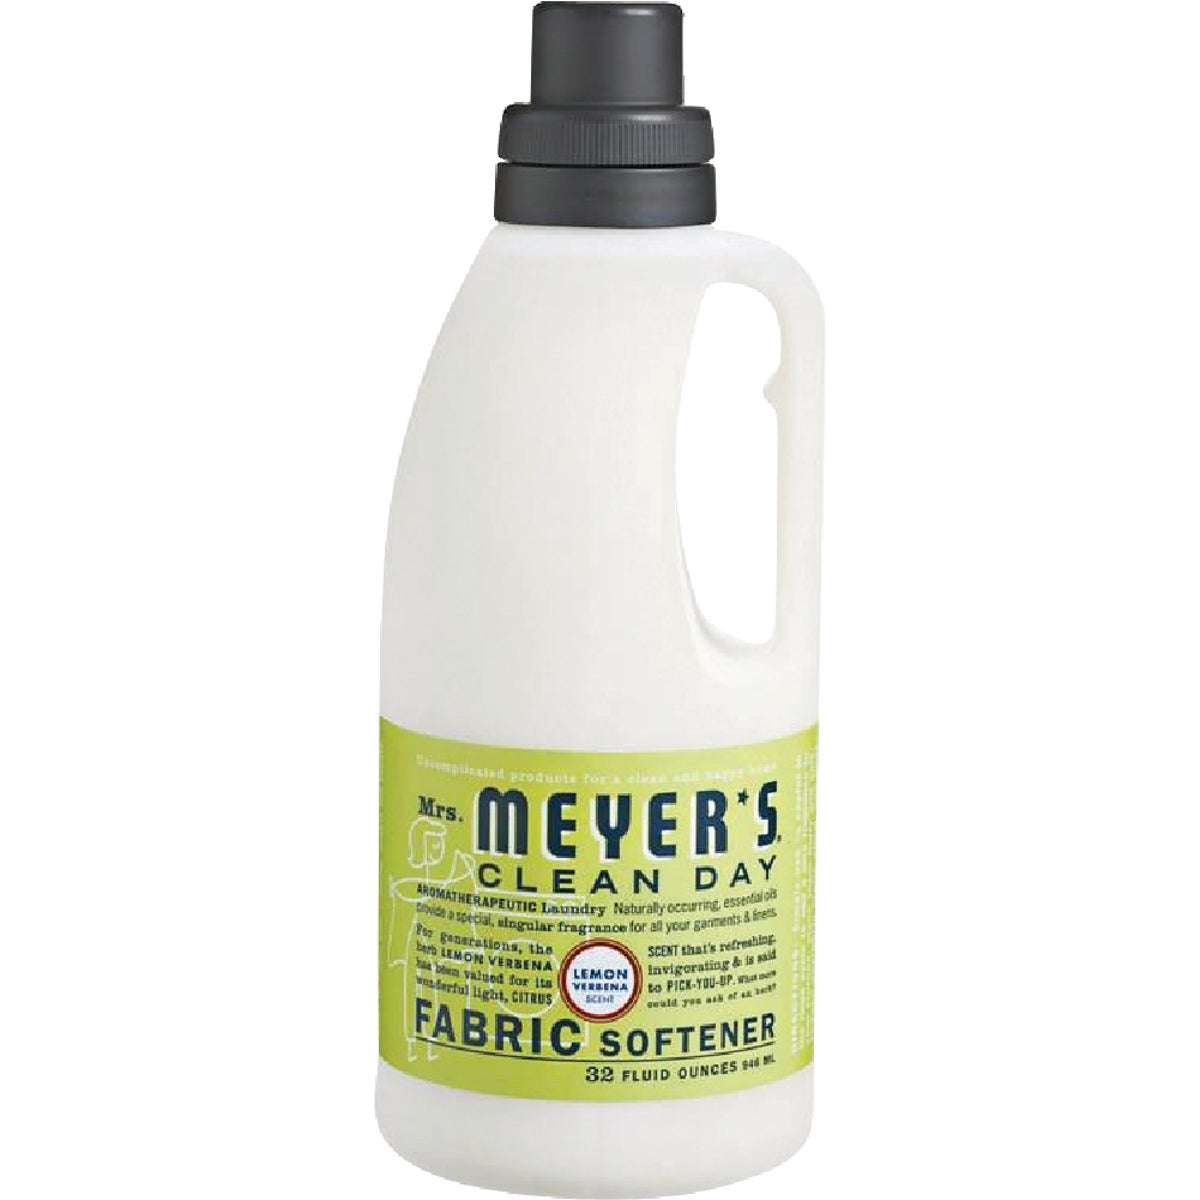 Mrs Meyer's Clean Day Fabric Softener